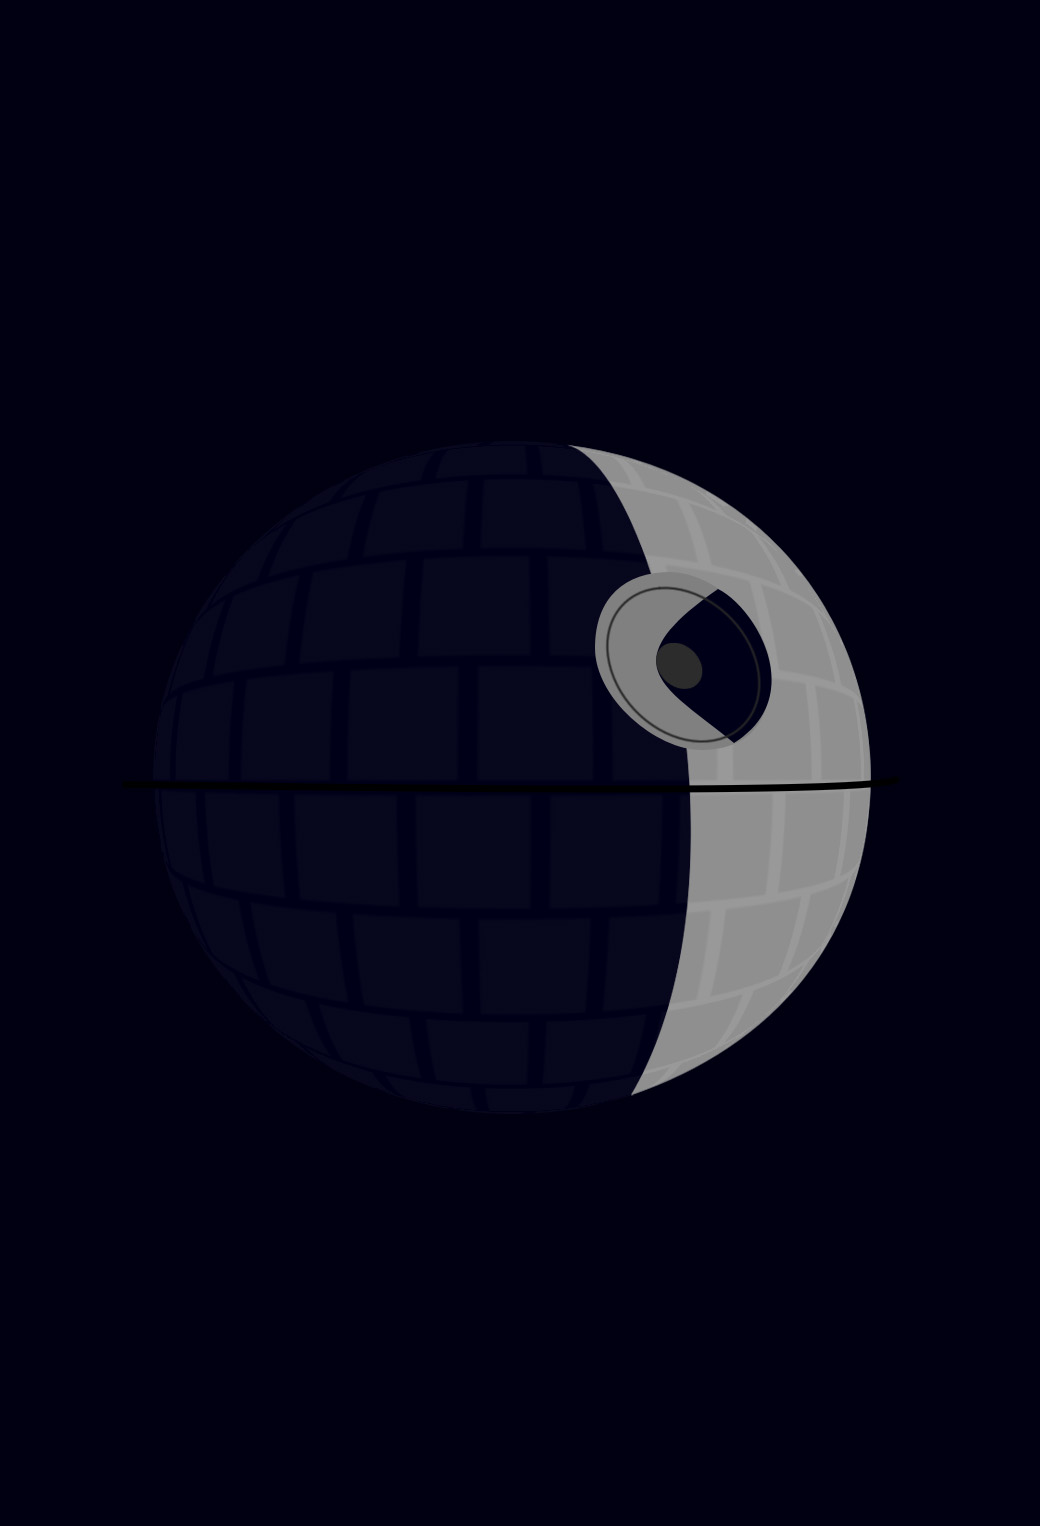 Star Wars Iphone Backgrounds Sf Wallpaper